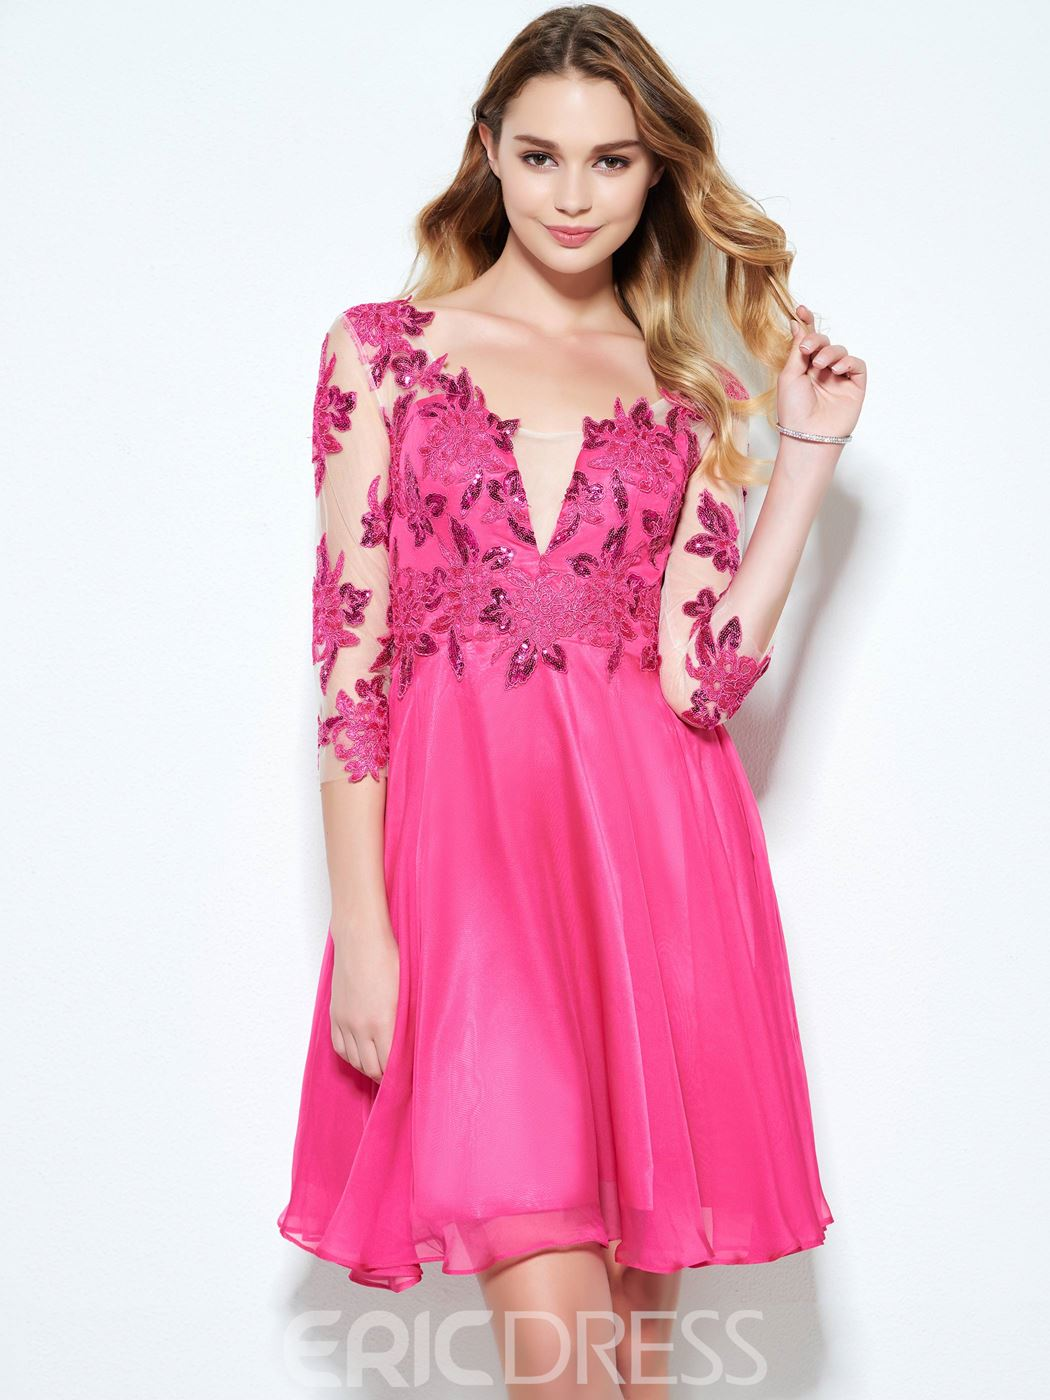 Ericdress 3/4 Length Sleeves Appliques Homecoming Dress